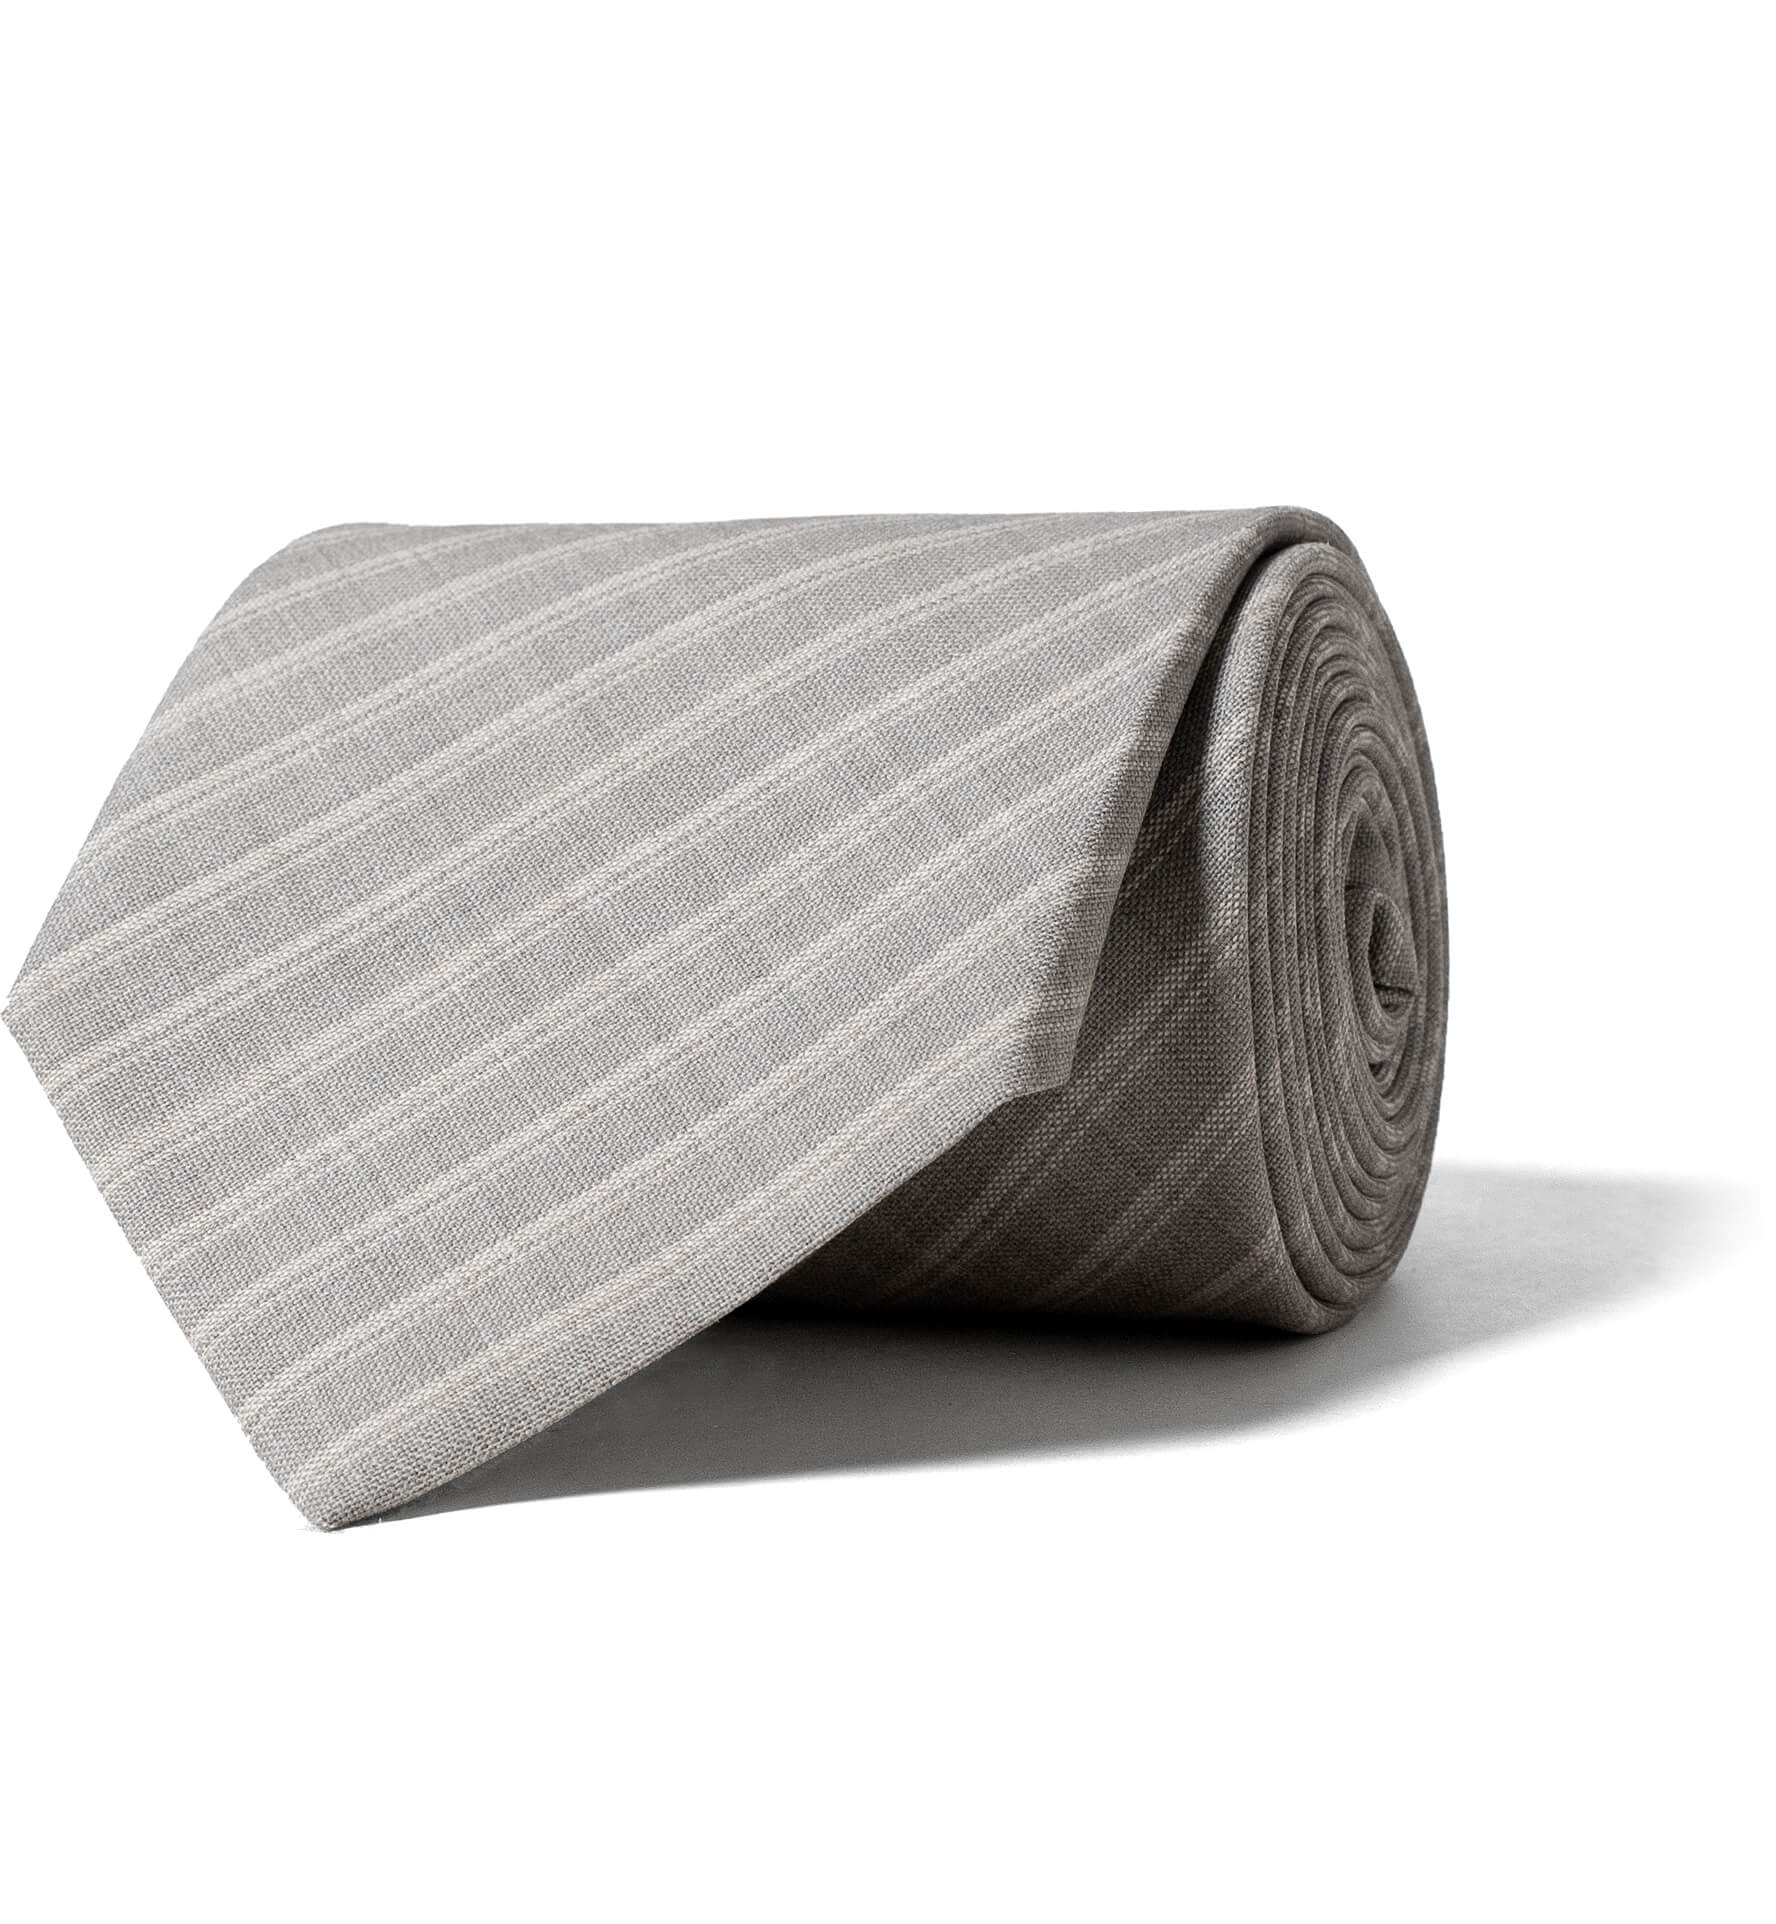 Zoom Image of Light Grey Striped Tropical Wool Tie